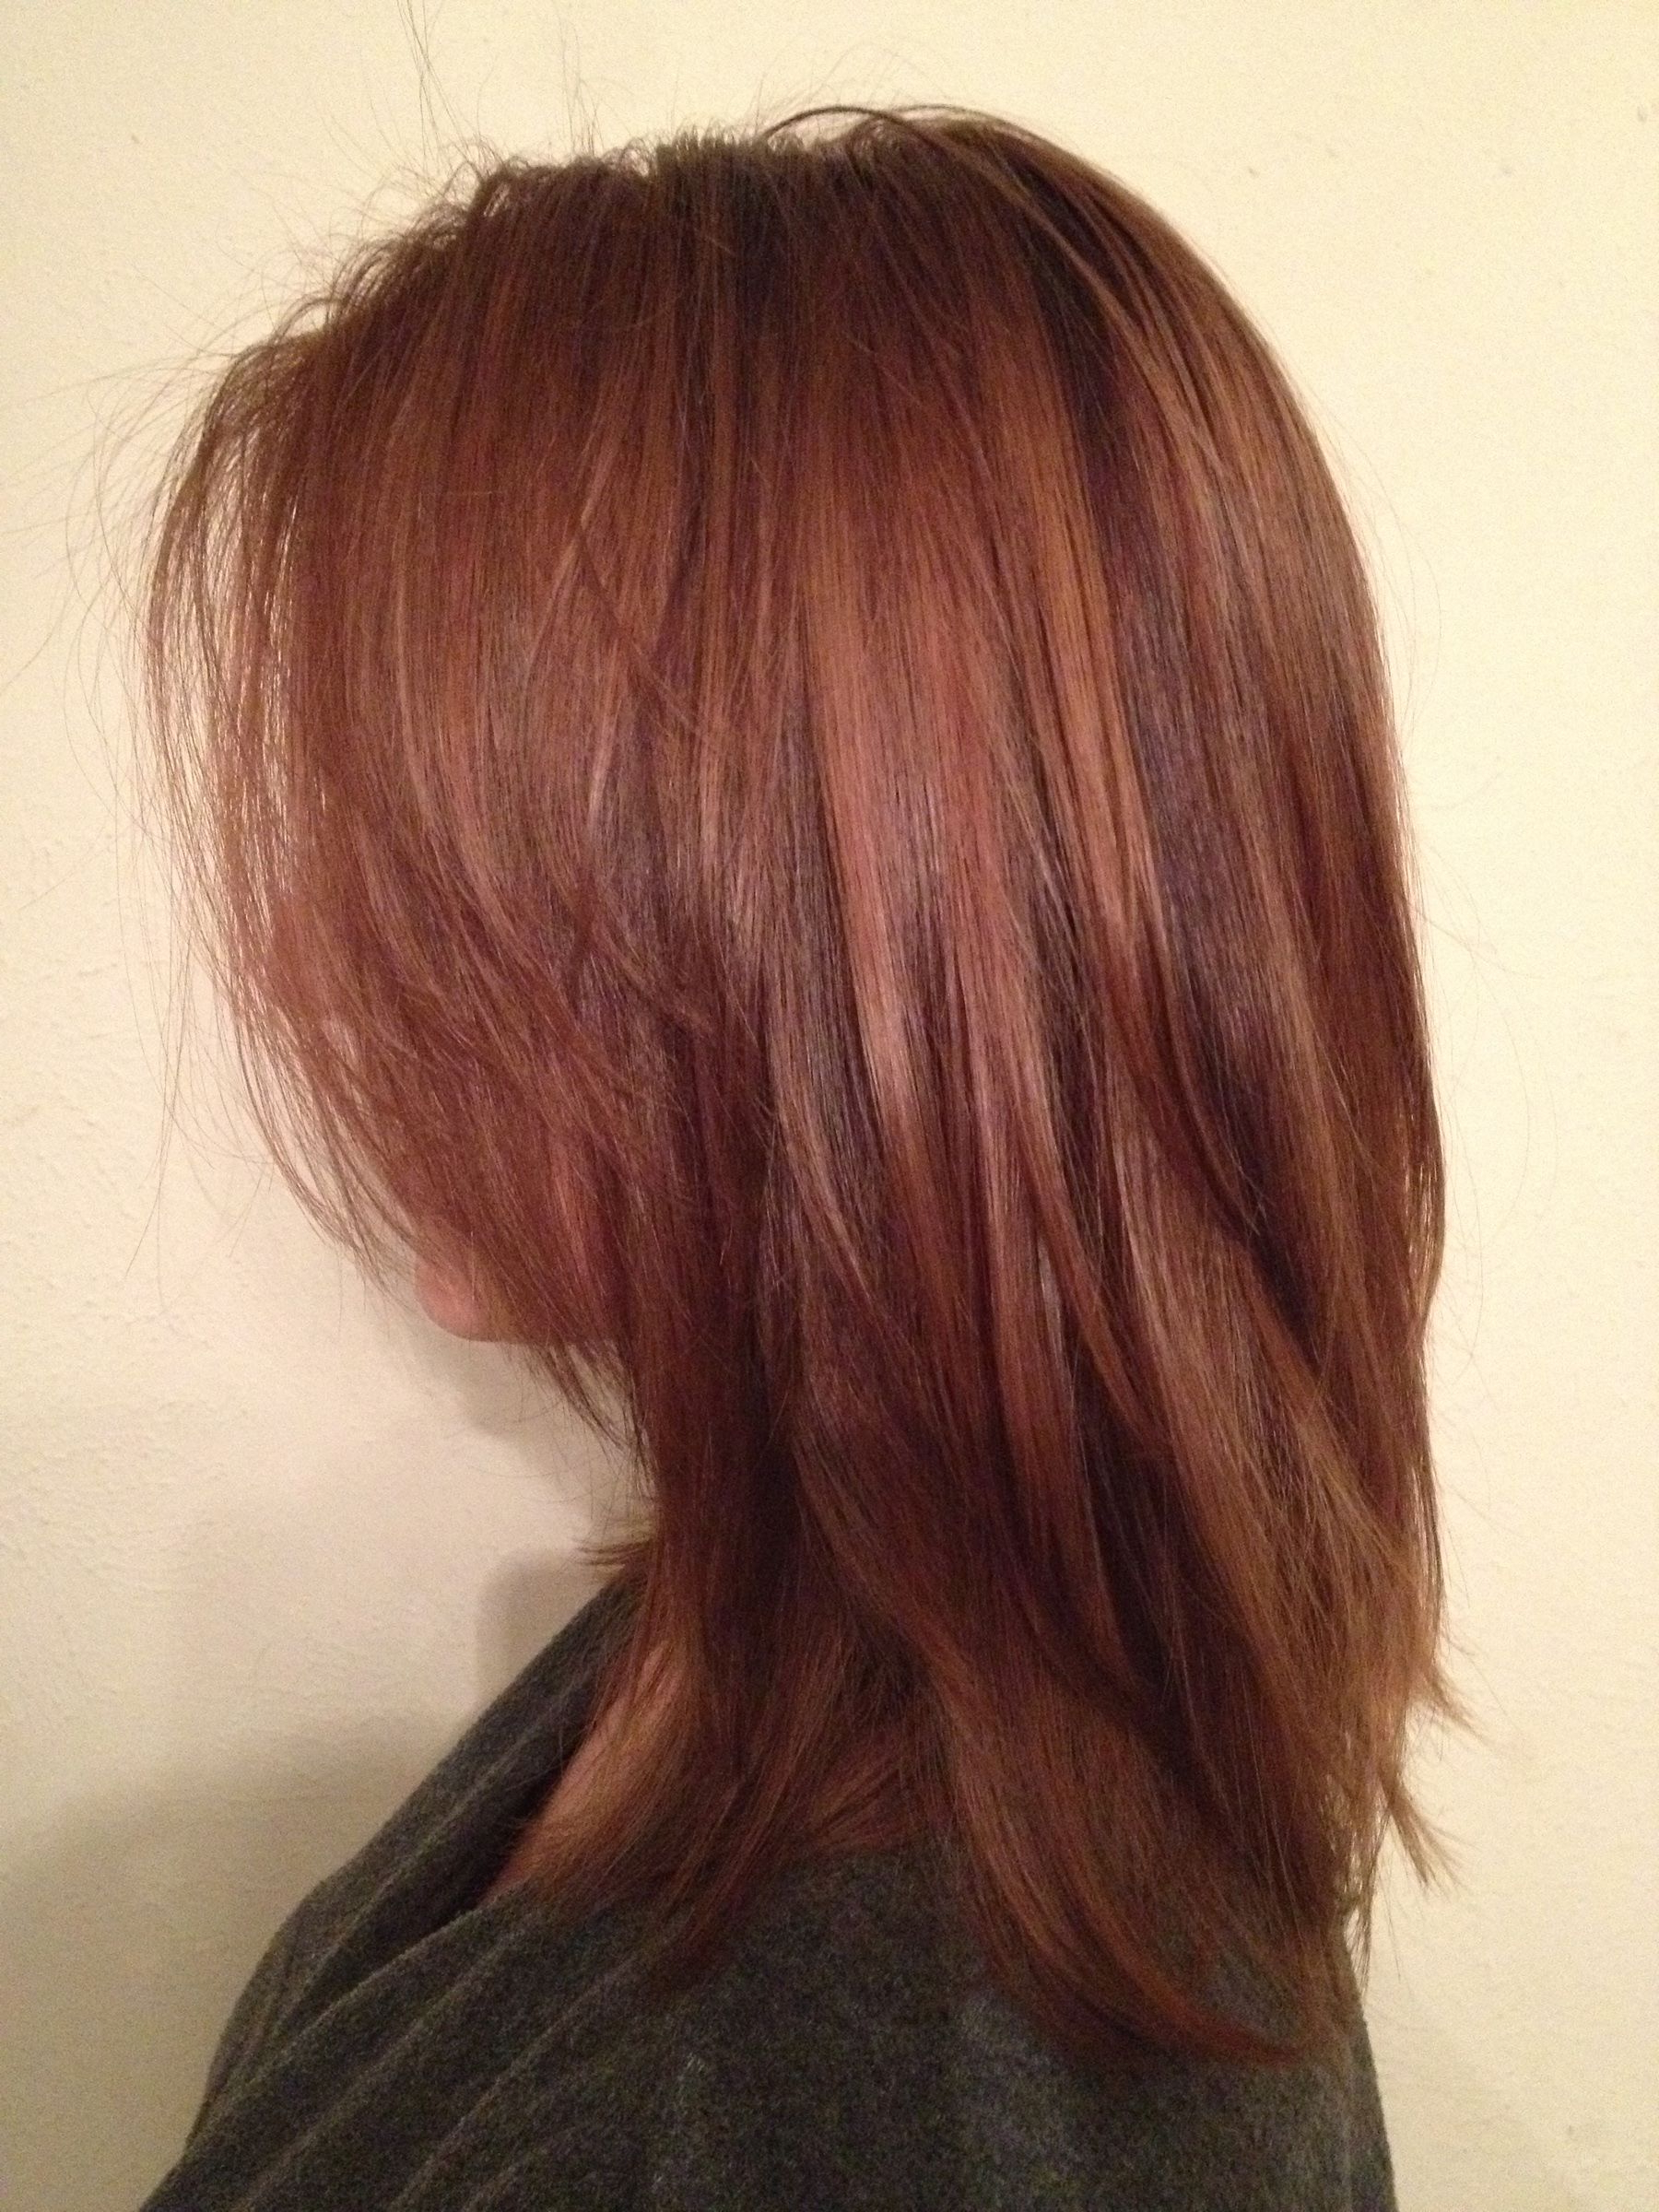 Pictures Of Auburn Hair With Highlights And Lowlights – Hairs Throughout Newest Auburn Medium Hairstyles (View 16 of 20)